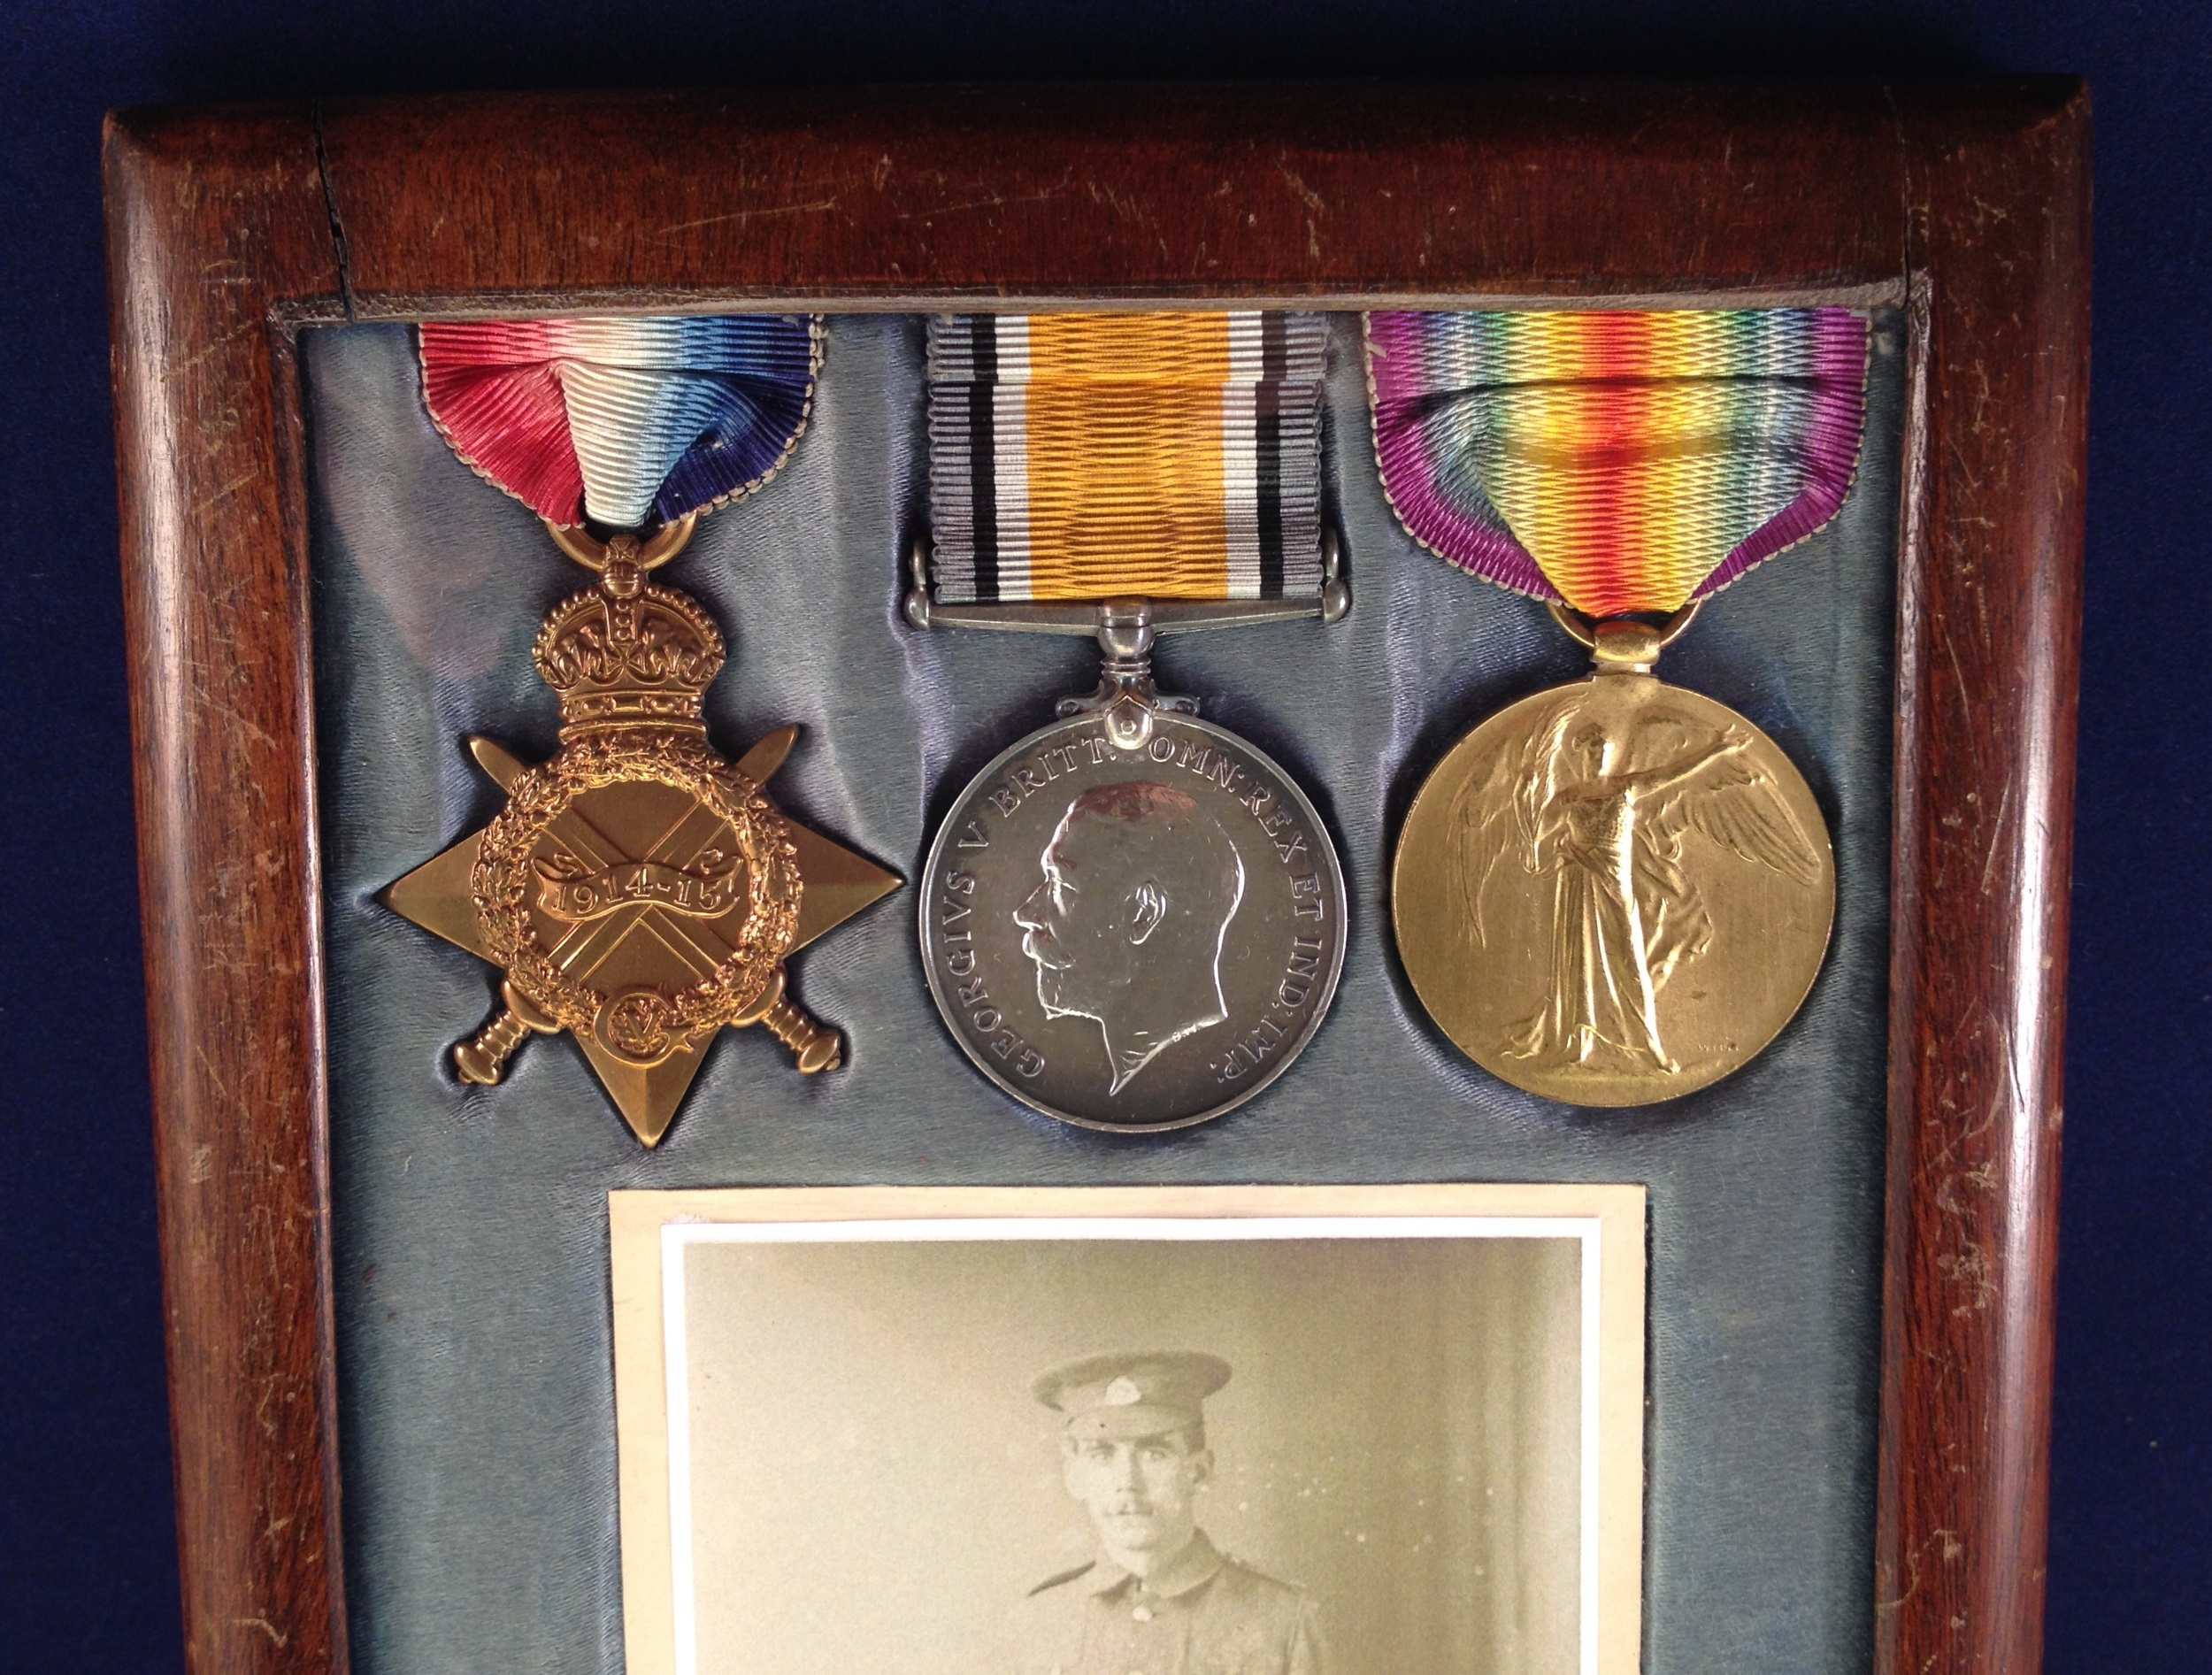 These are Bertie's medals. They were bought by a Hadleigh based collector along with Bertie's memorial plaque.